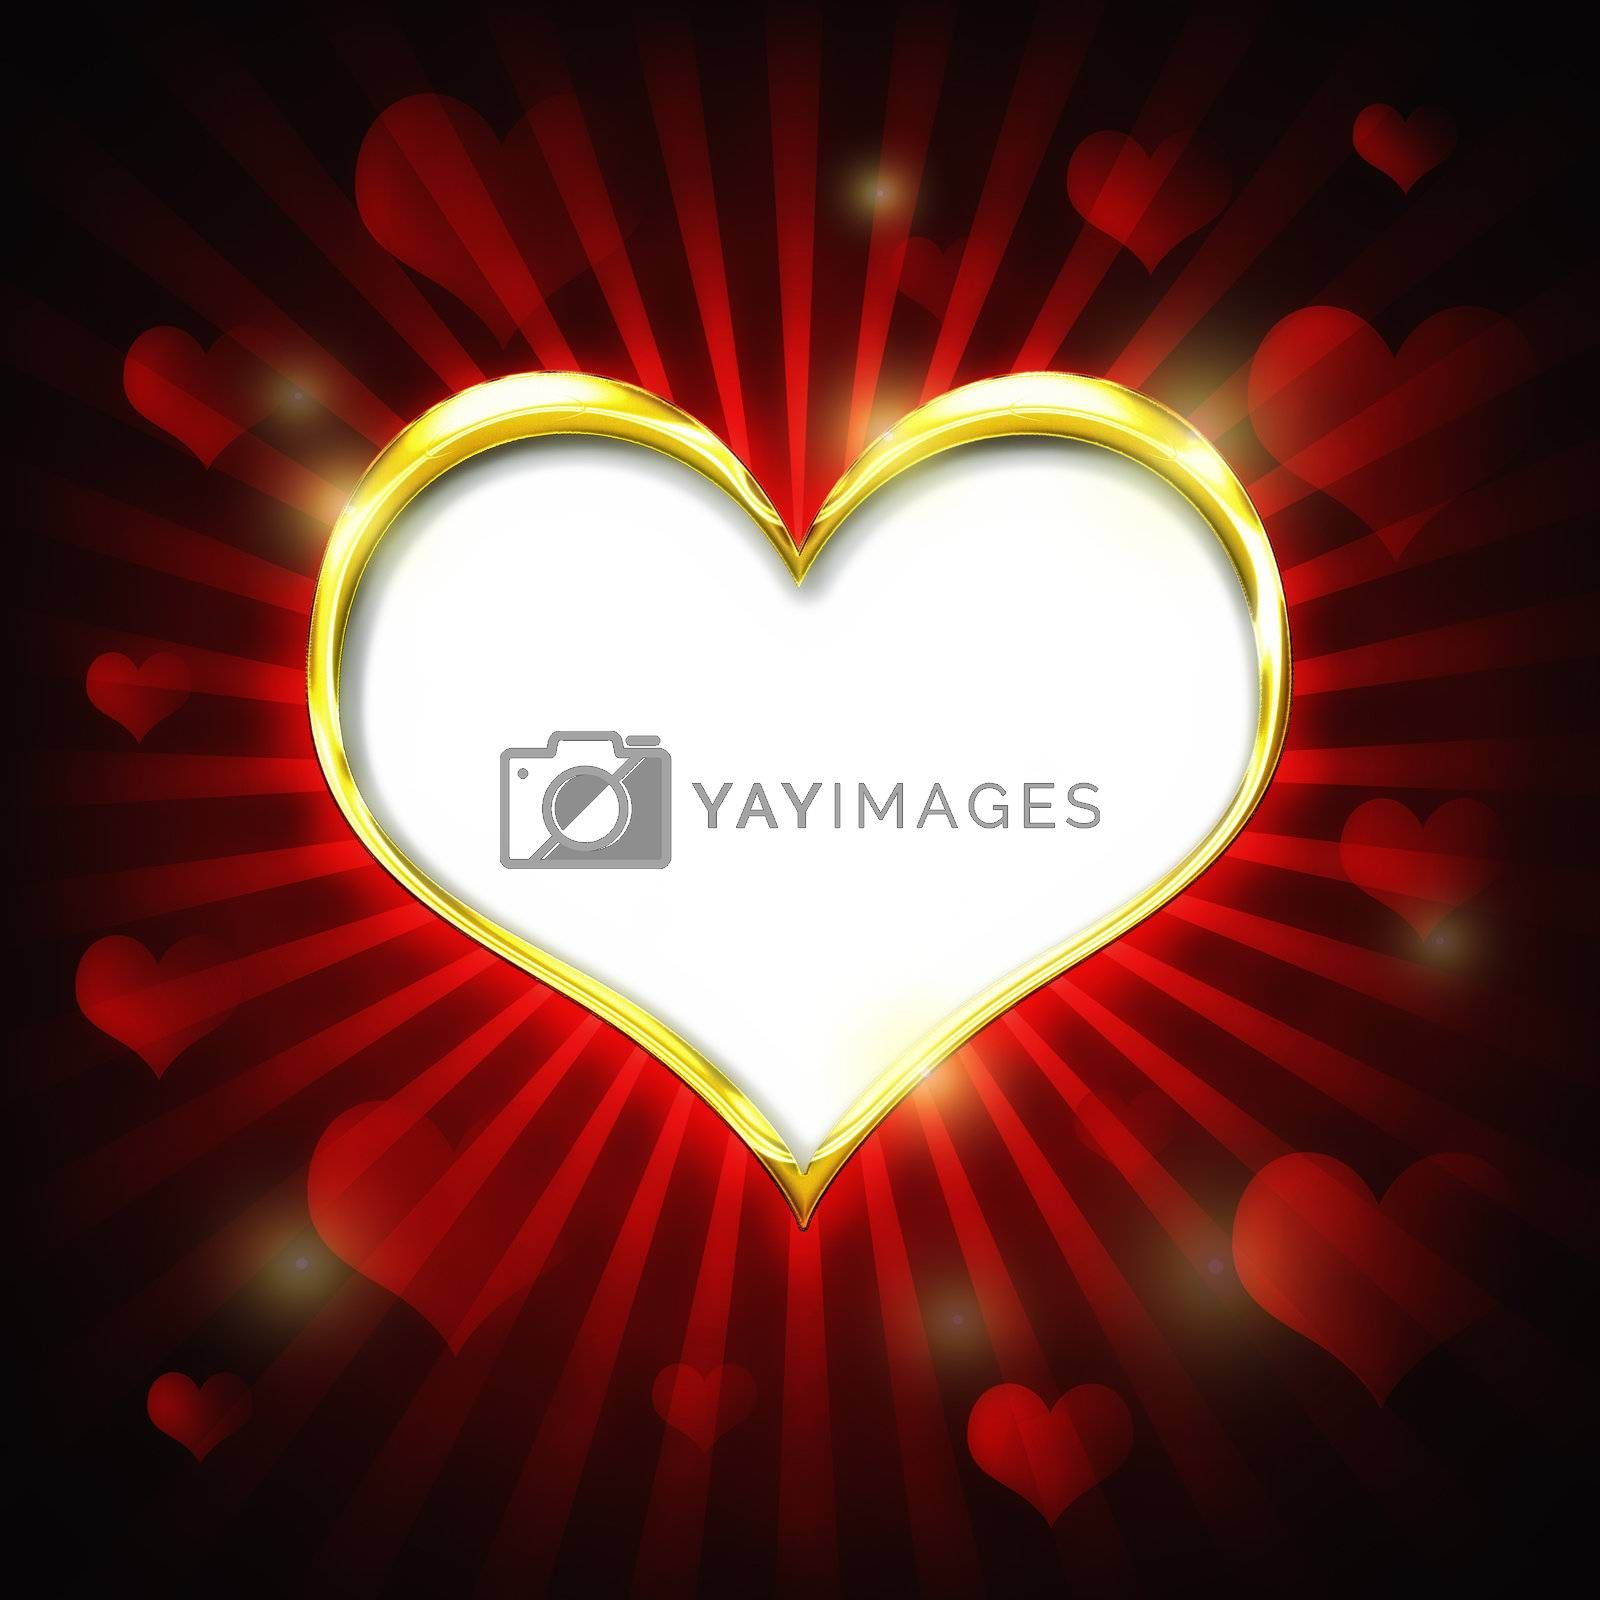 Valenties Day Card with a big golden heart and many smaller hearts on a red background